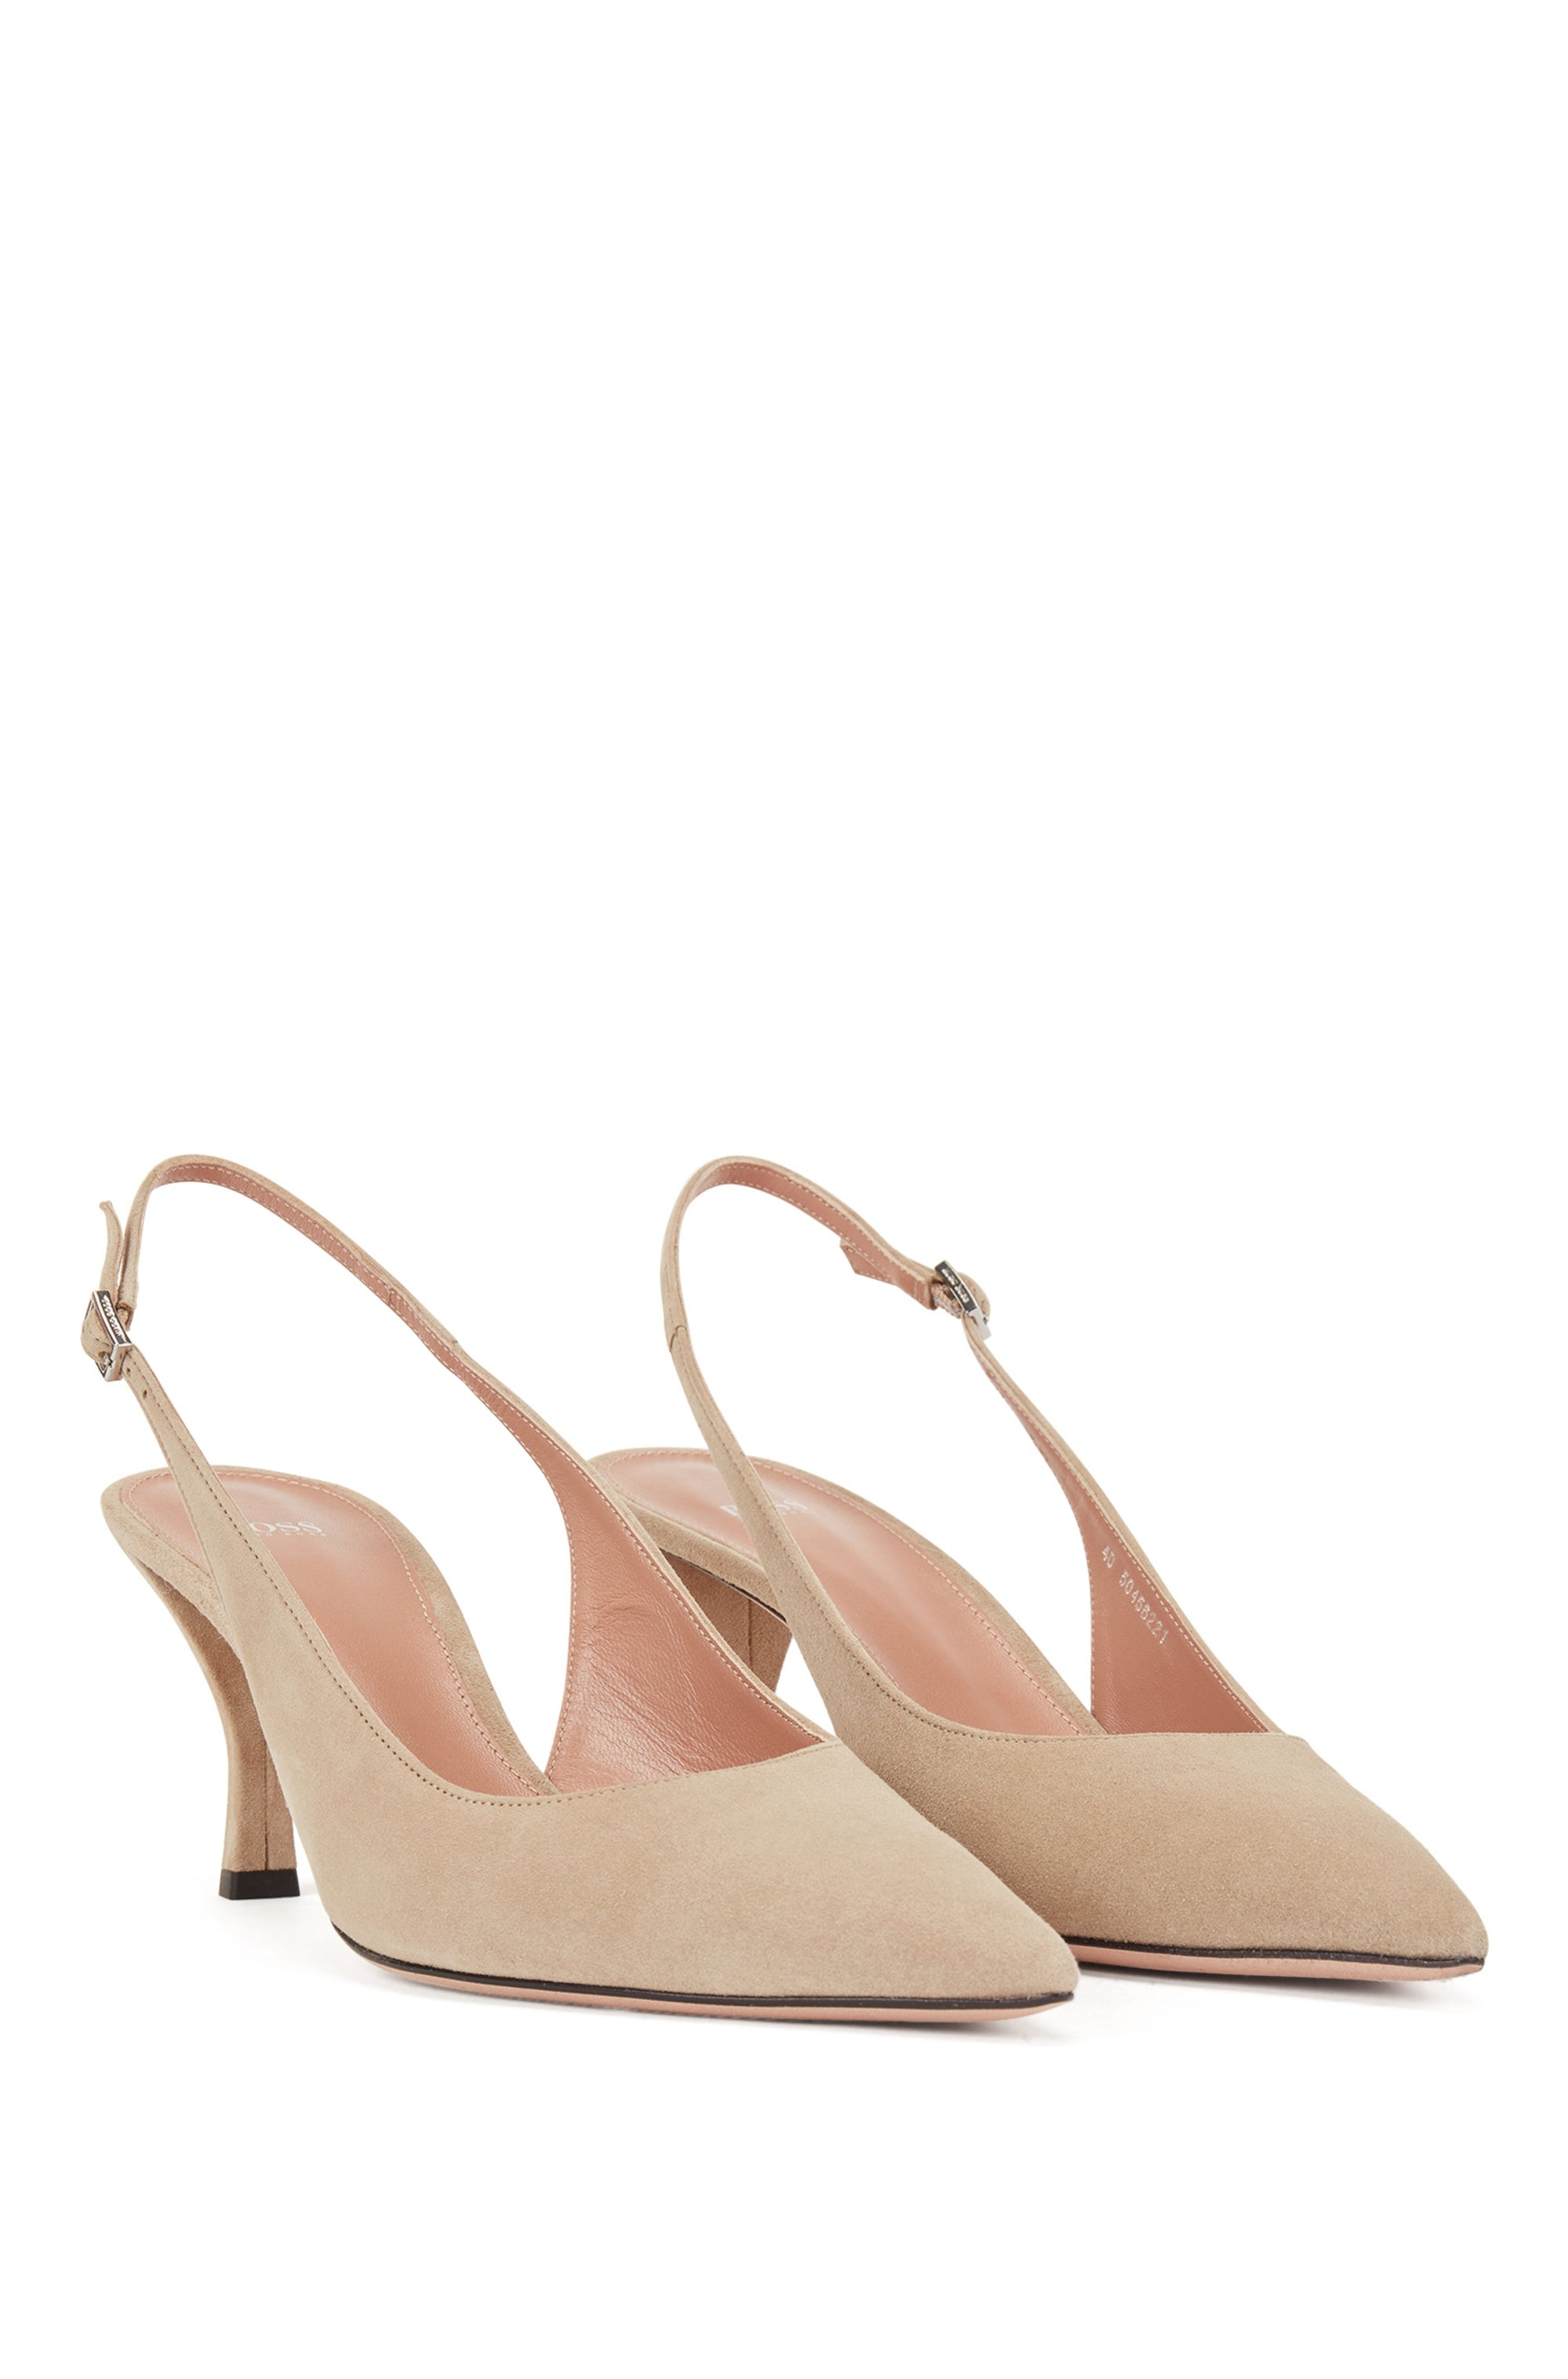 Slingback shoes in Italian suede with pointed toe